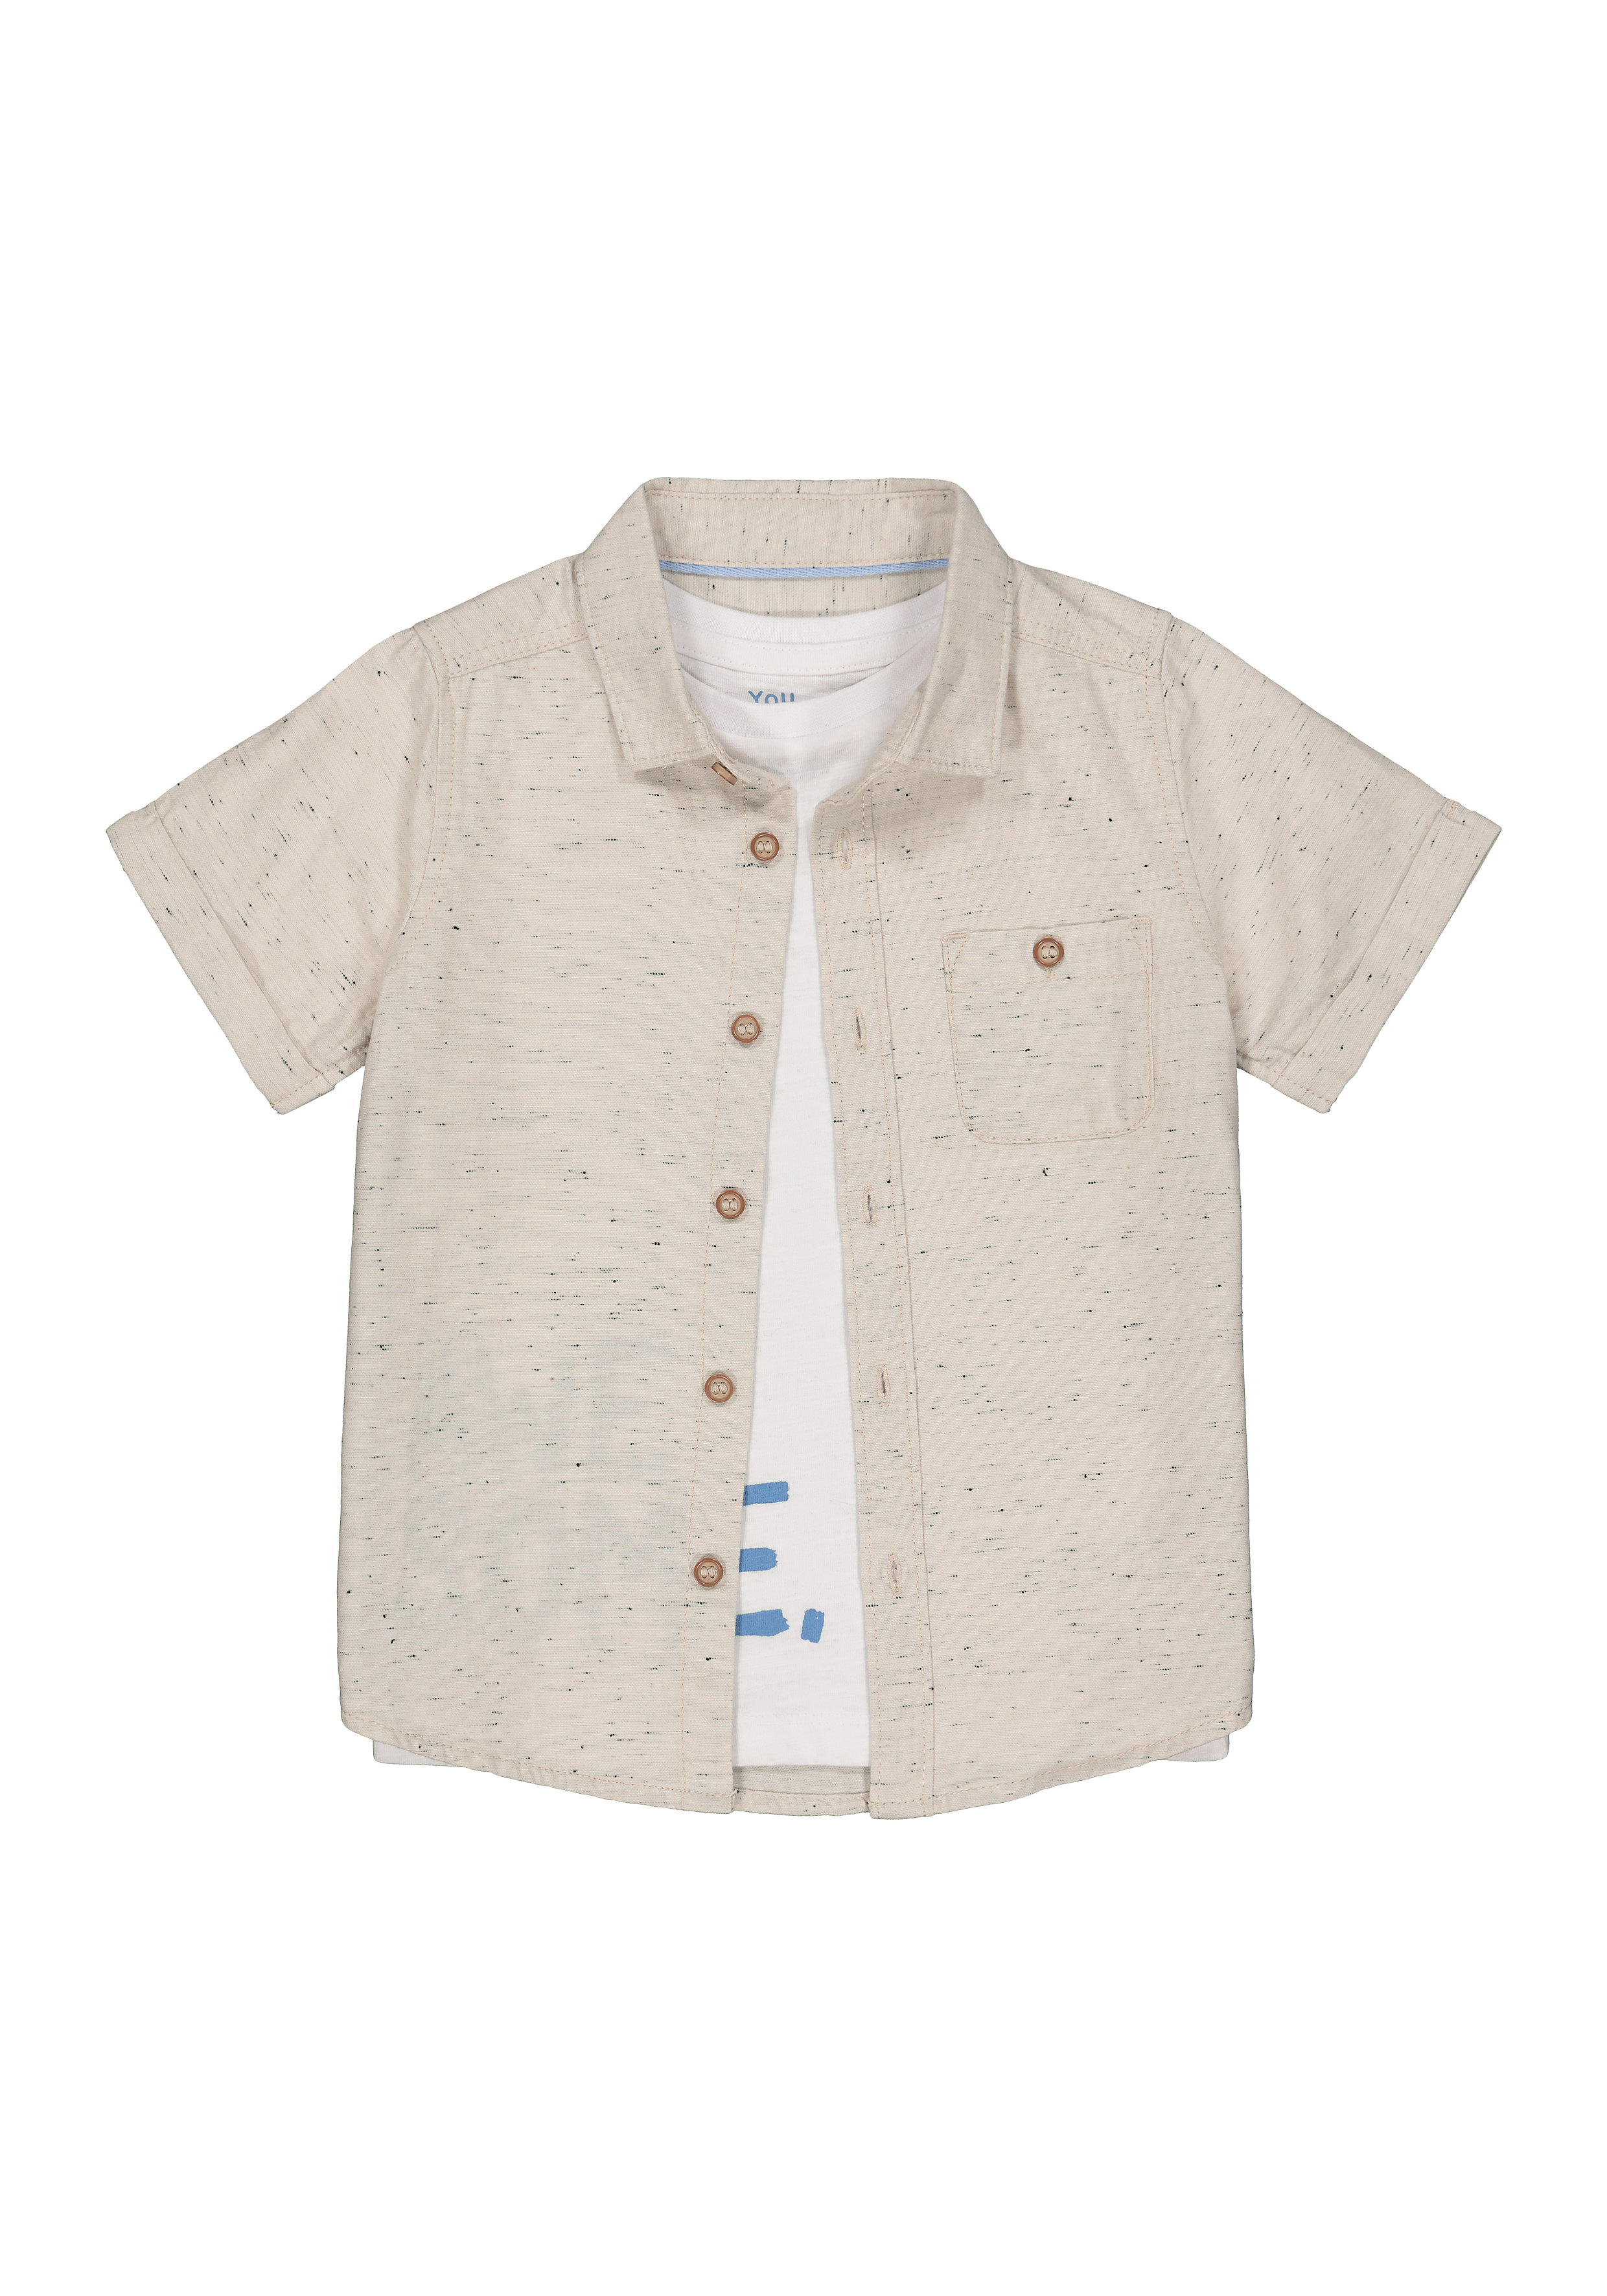 Mothercare | Boys Half Sleeves Shirt And T-Shirt Set Text Print - Beige White